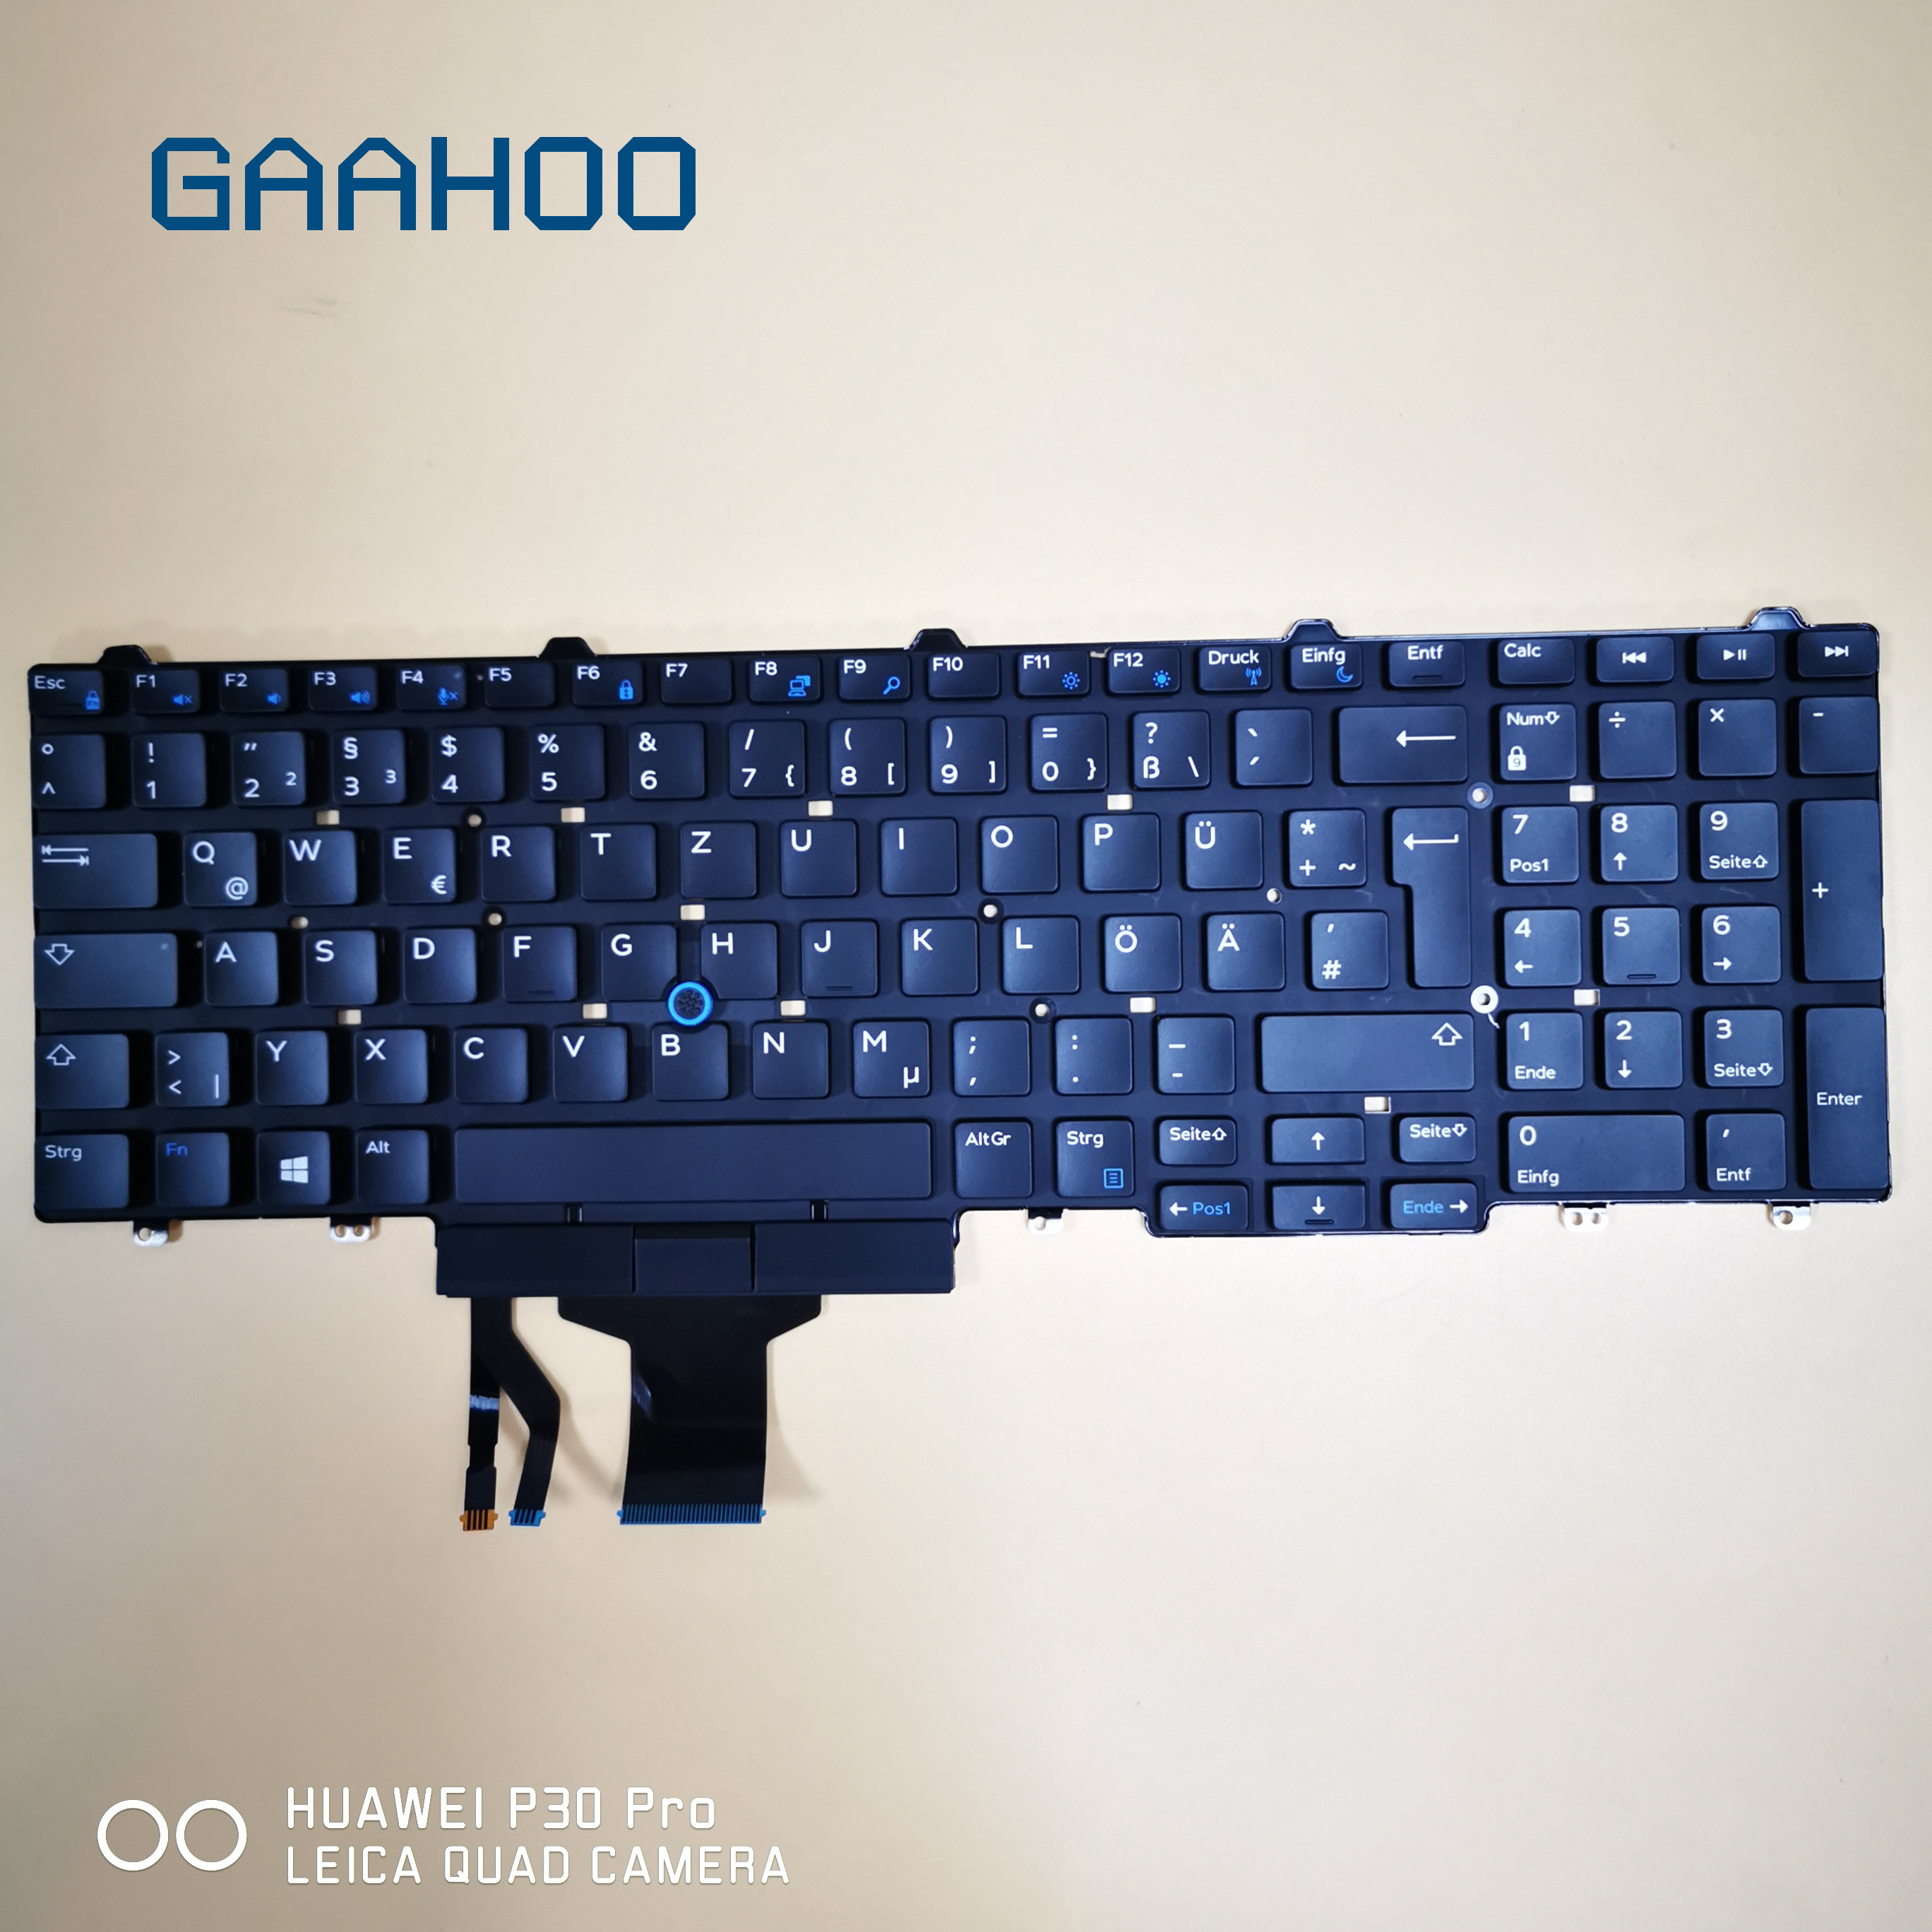 GERMANY GR <font><b>keyboard</b></font> for <font><b>Dell</b></font> Latitude 5550 5570 5580 5590 5591 PRECISION 3510 <font><b>3520</b></font> 3530 7510 7520 7710 7720 LAPTOP w/ TRUCKPOINT image